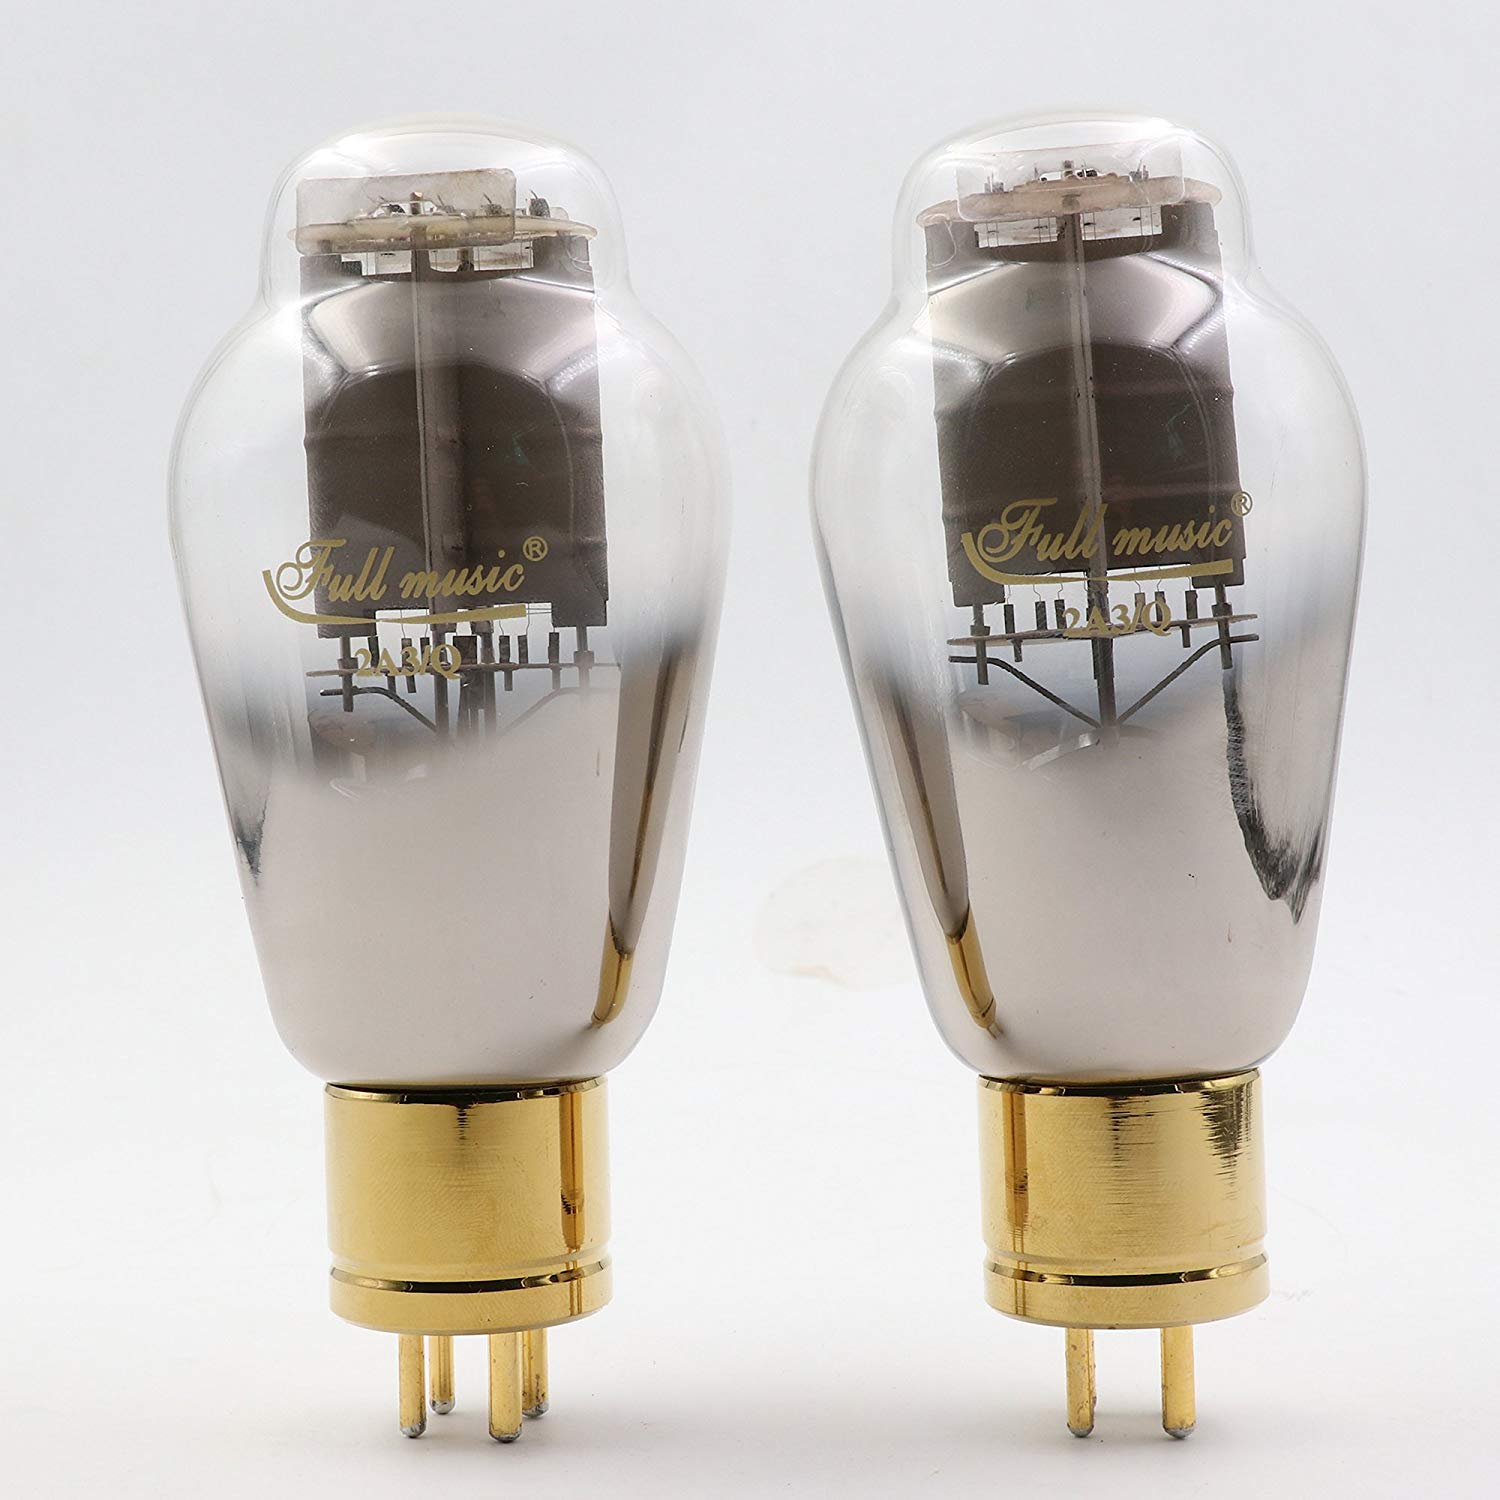 1 Pair Top Premium TJ Fullmusic 2A3/Q 2A3Q Vacuum Tube Hifi Audio 2A3 Power Tubes Factory Test&Match